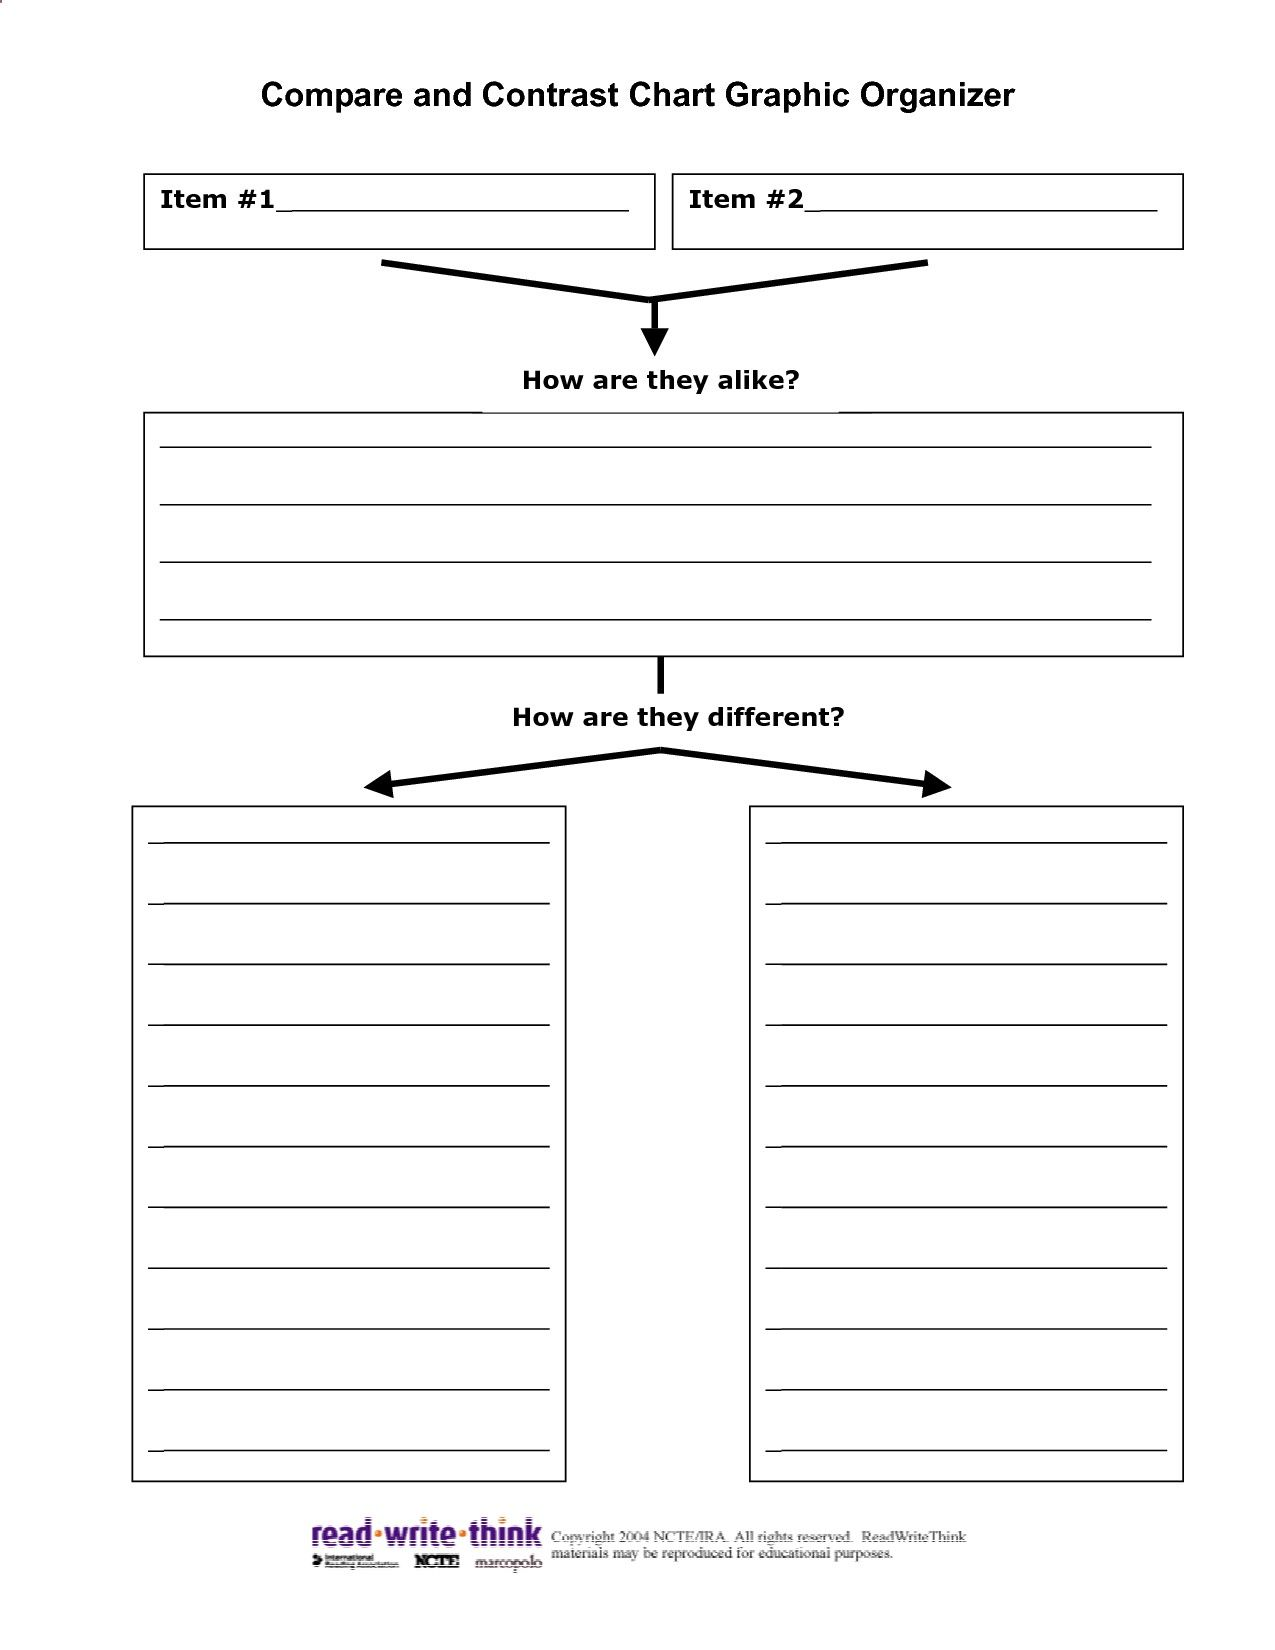 graphic organizer for a compare/contrast essay | write paper service